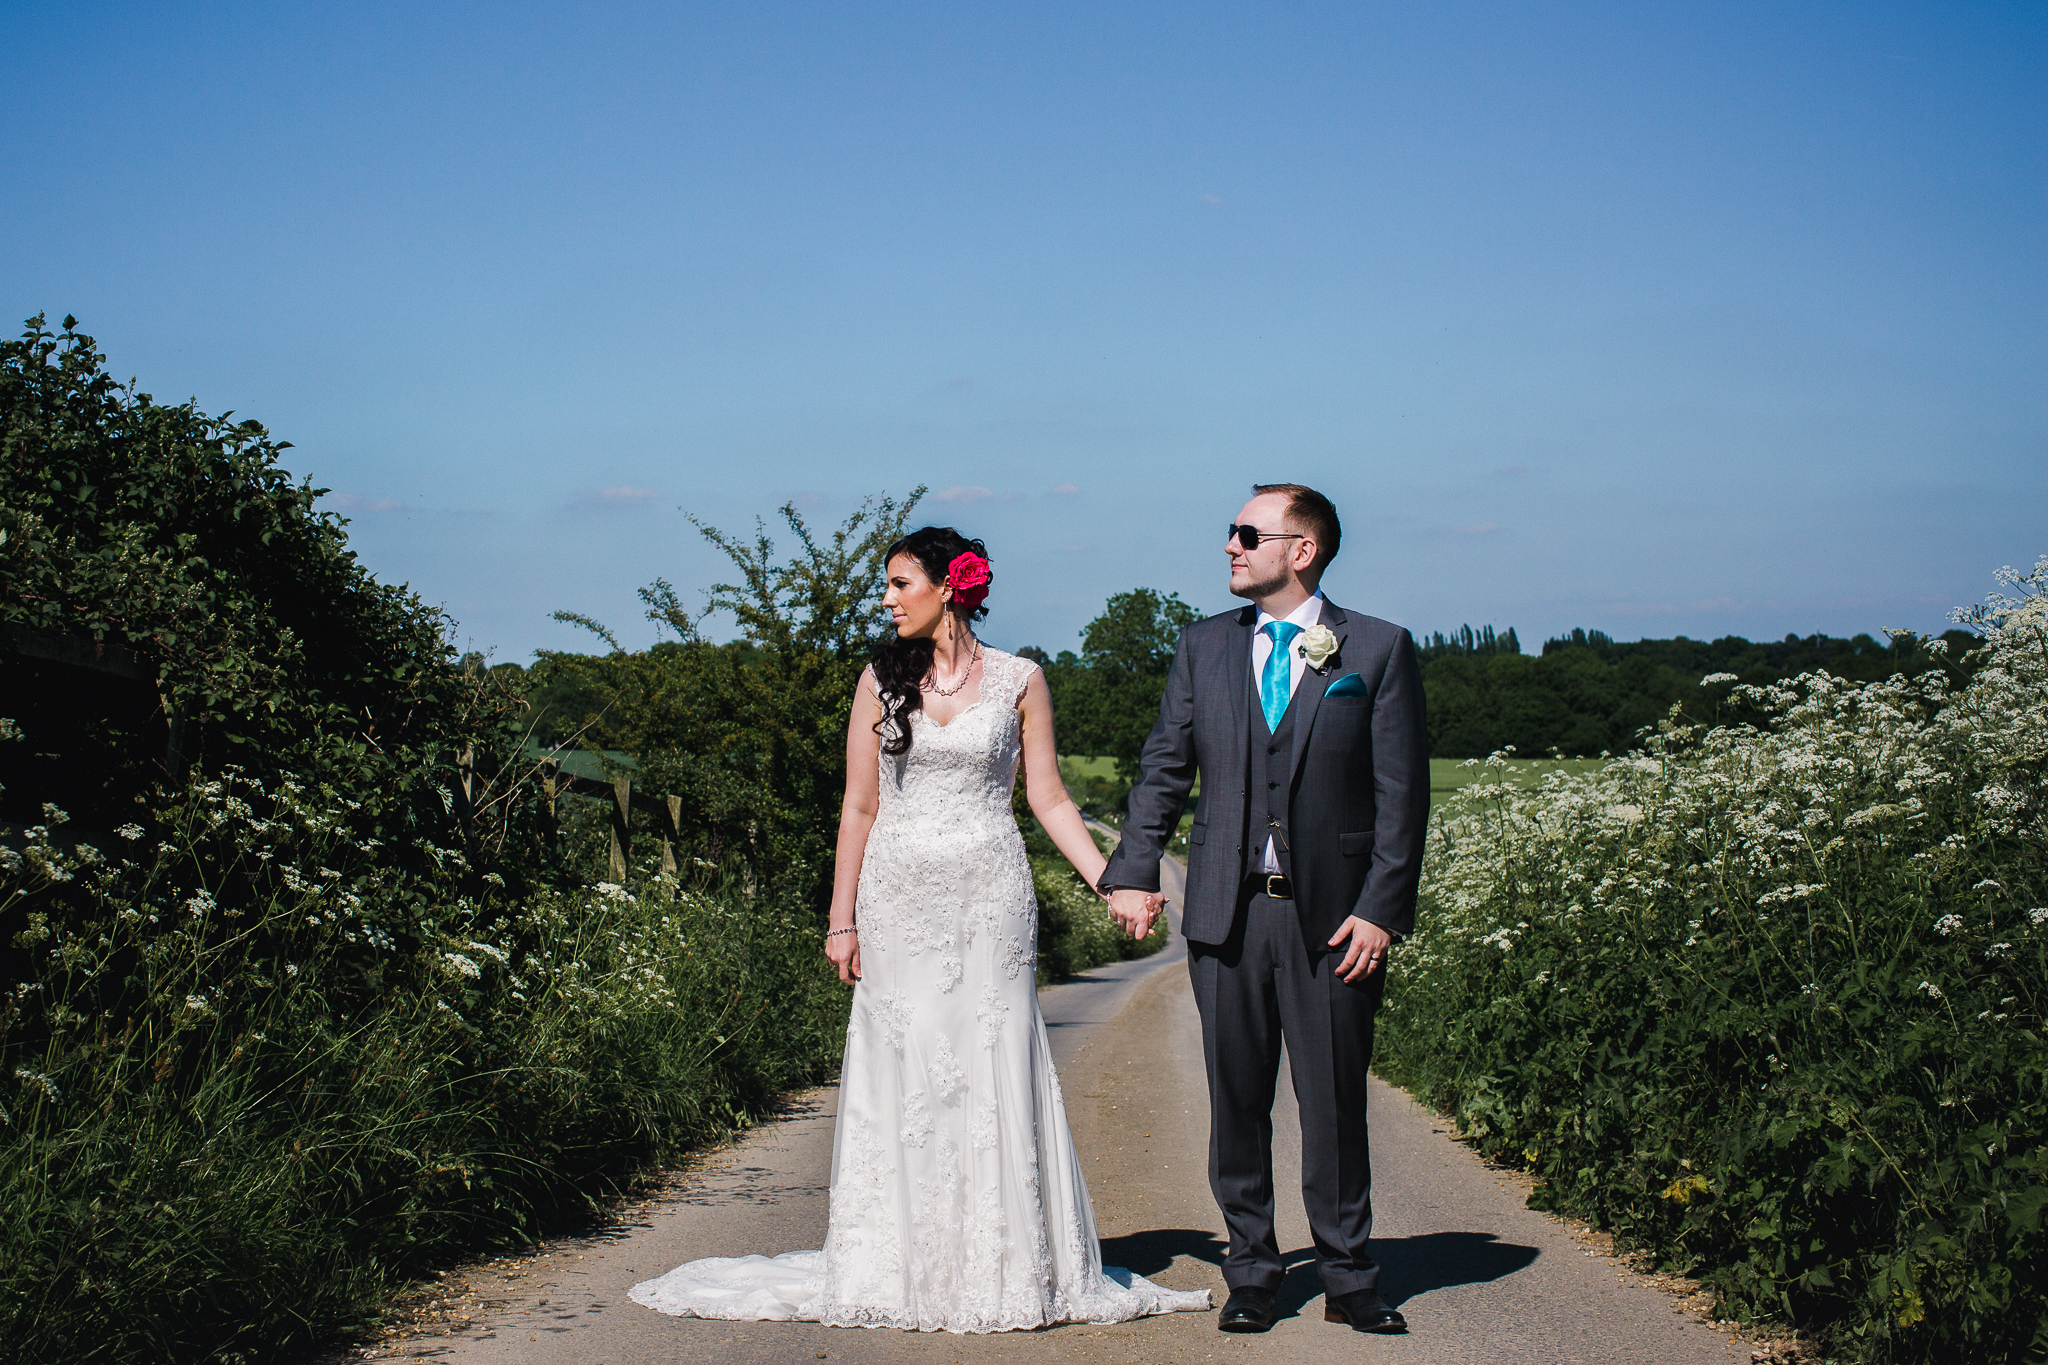 Alice and David - A very sunny Swancar Farm Wedding